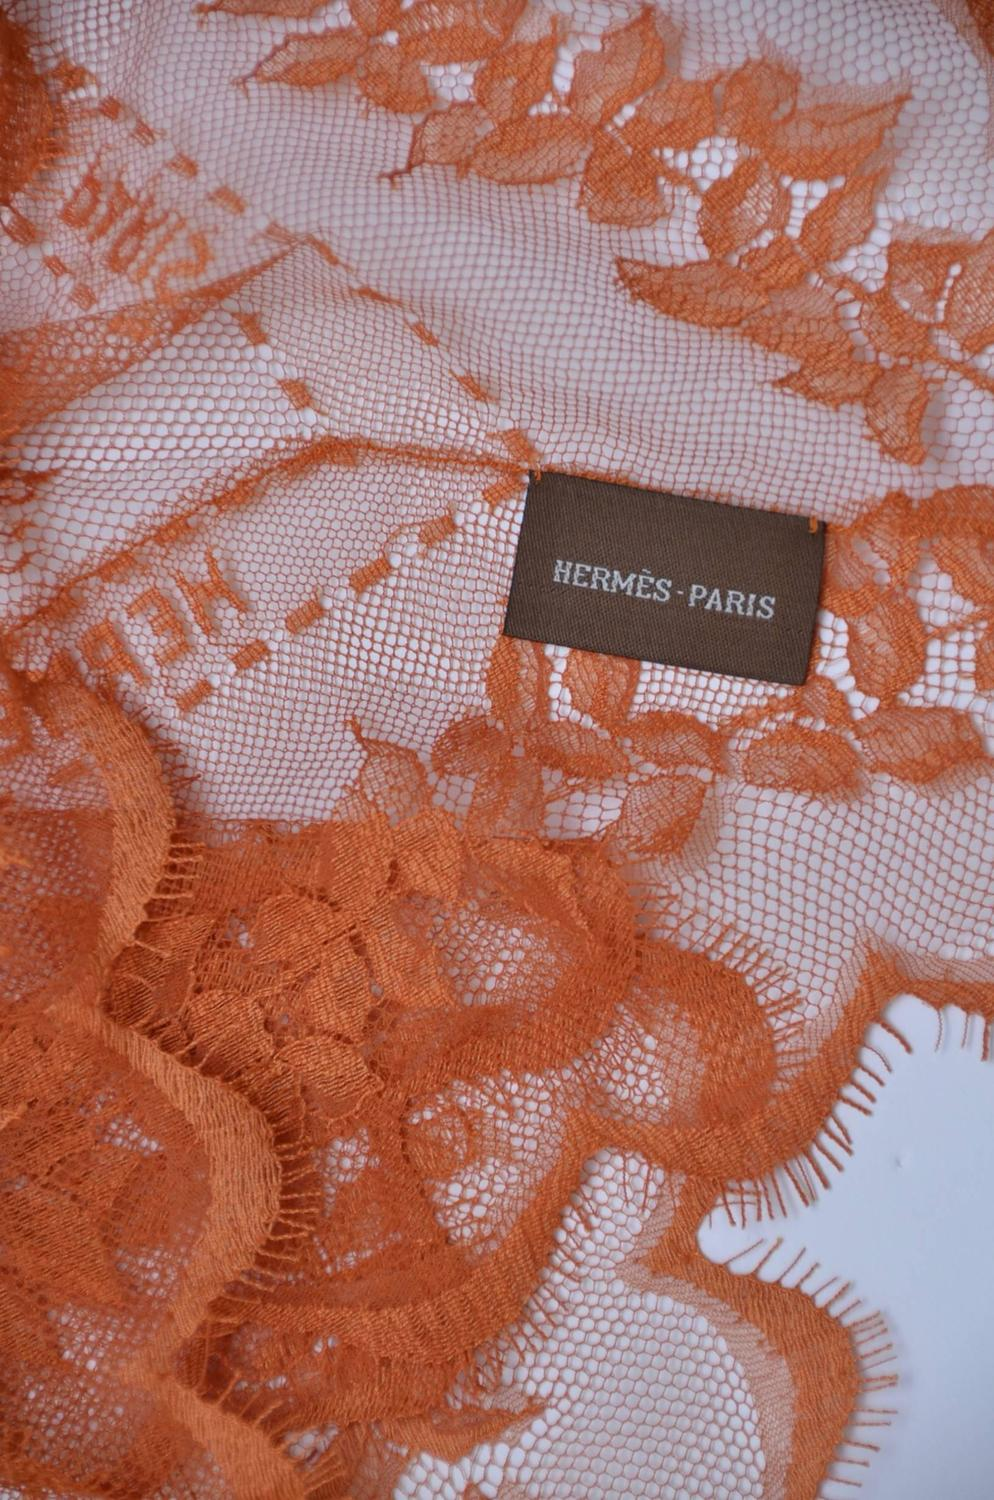 Amazing Rare Hermes Lace Scarf With Hermes Paris